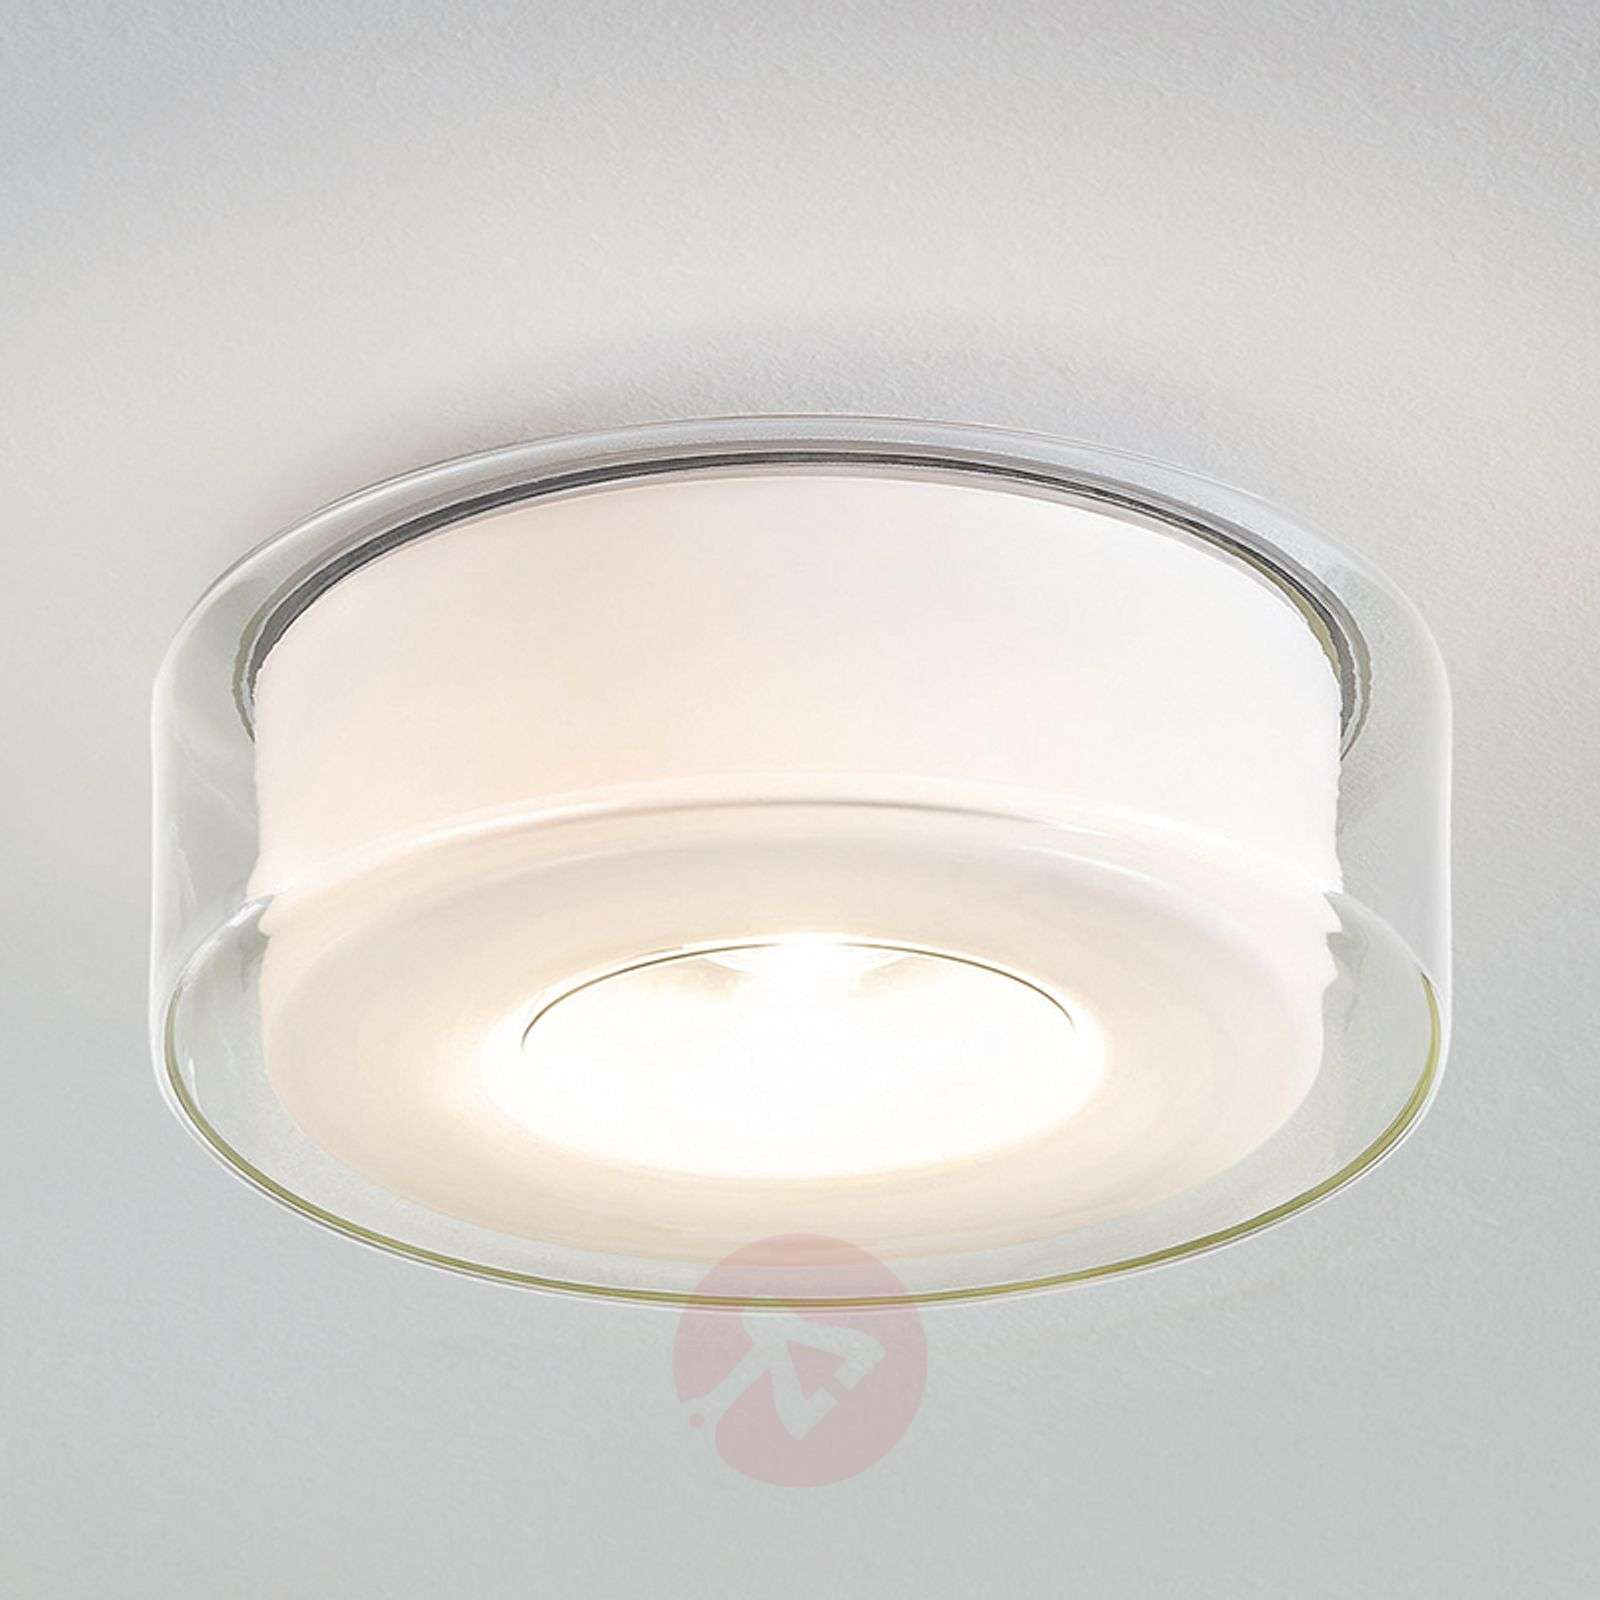 Lasinen LED-design-kattovalaisin Curling-8550016-01